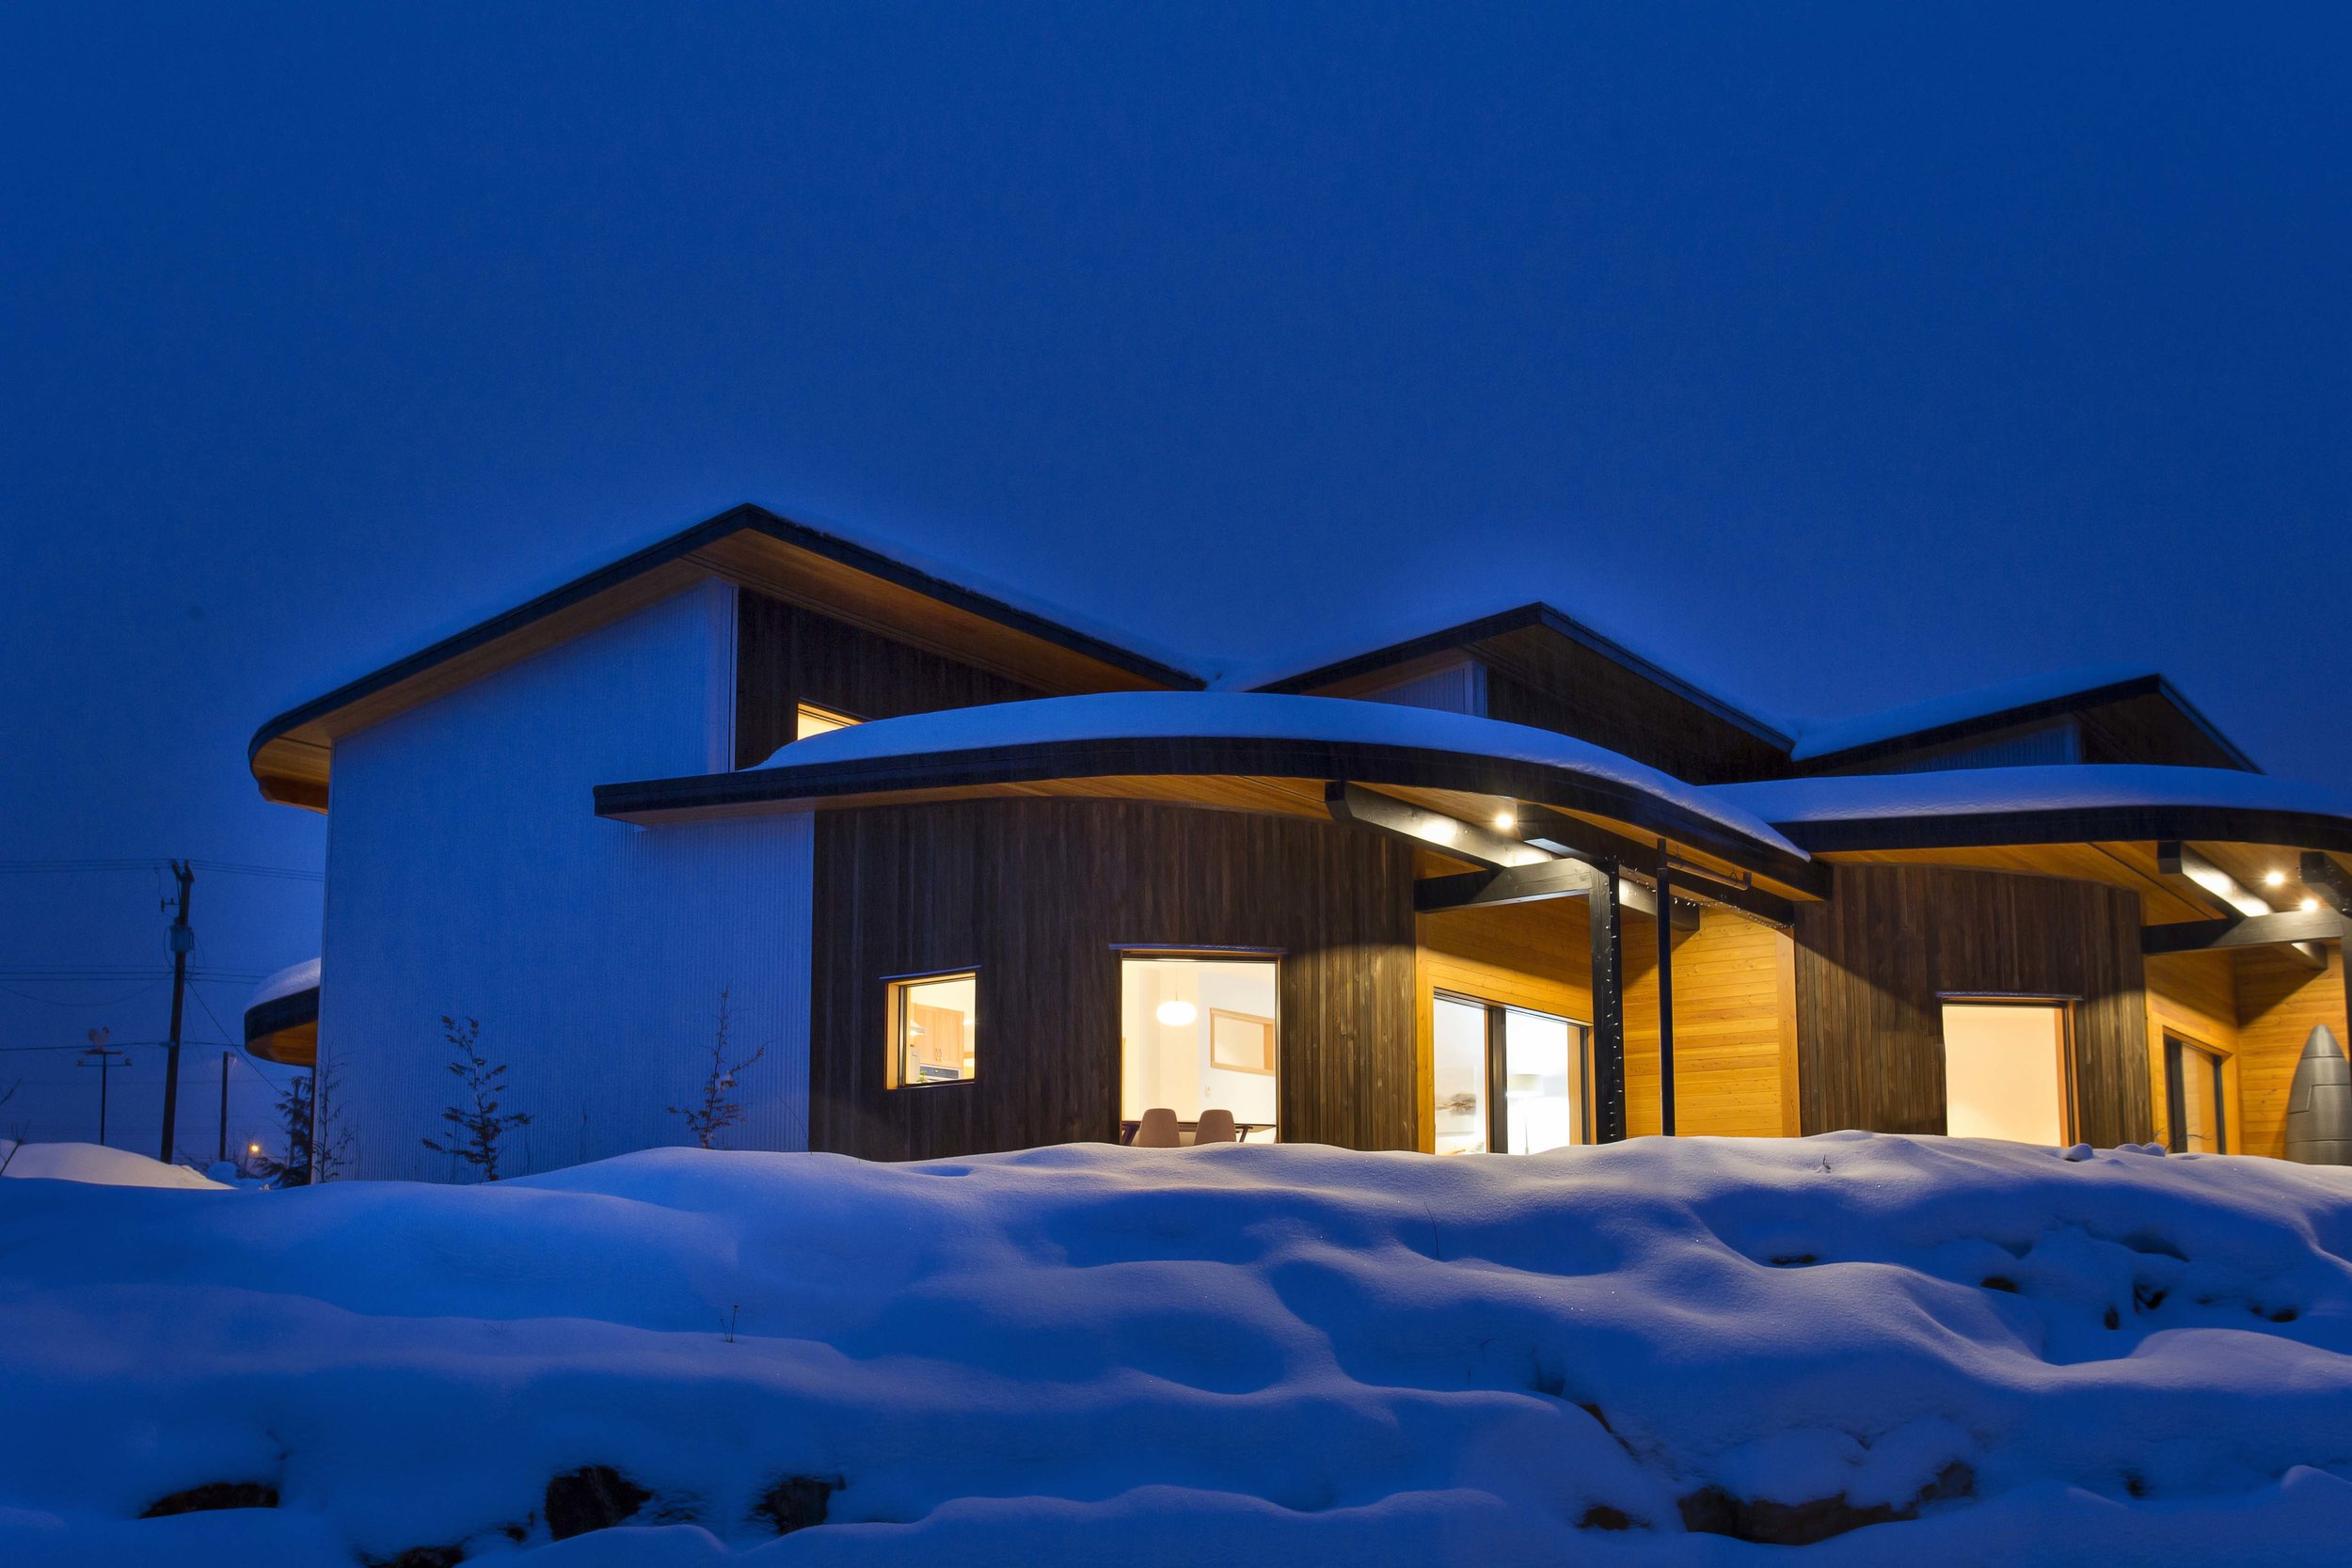 ENERGY-EFFICIENT CERTIFIED PASSIVE HOUSES